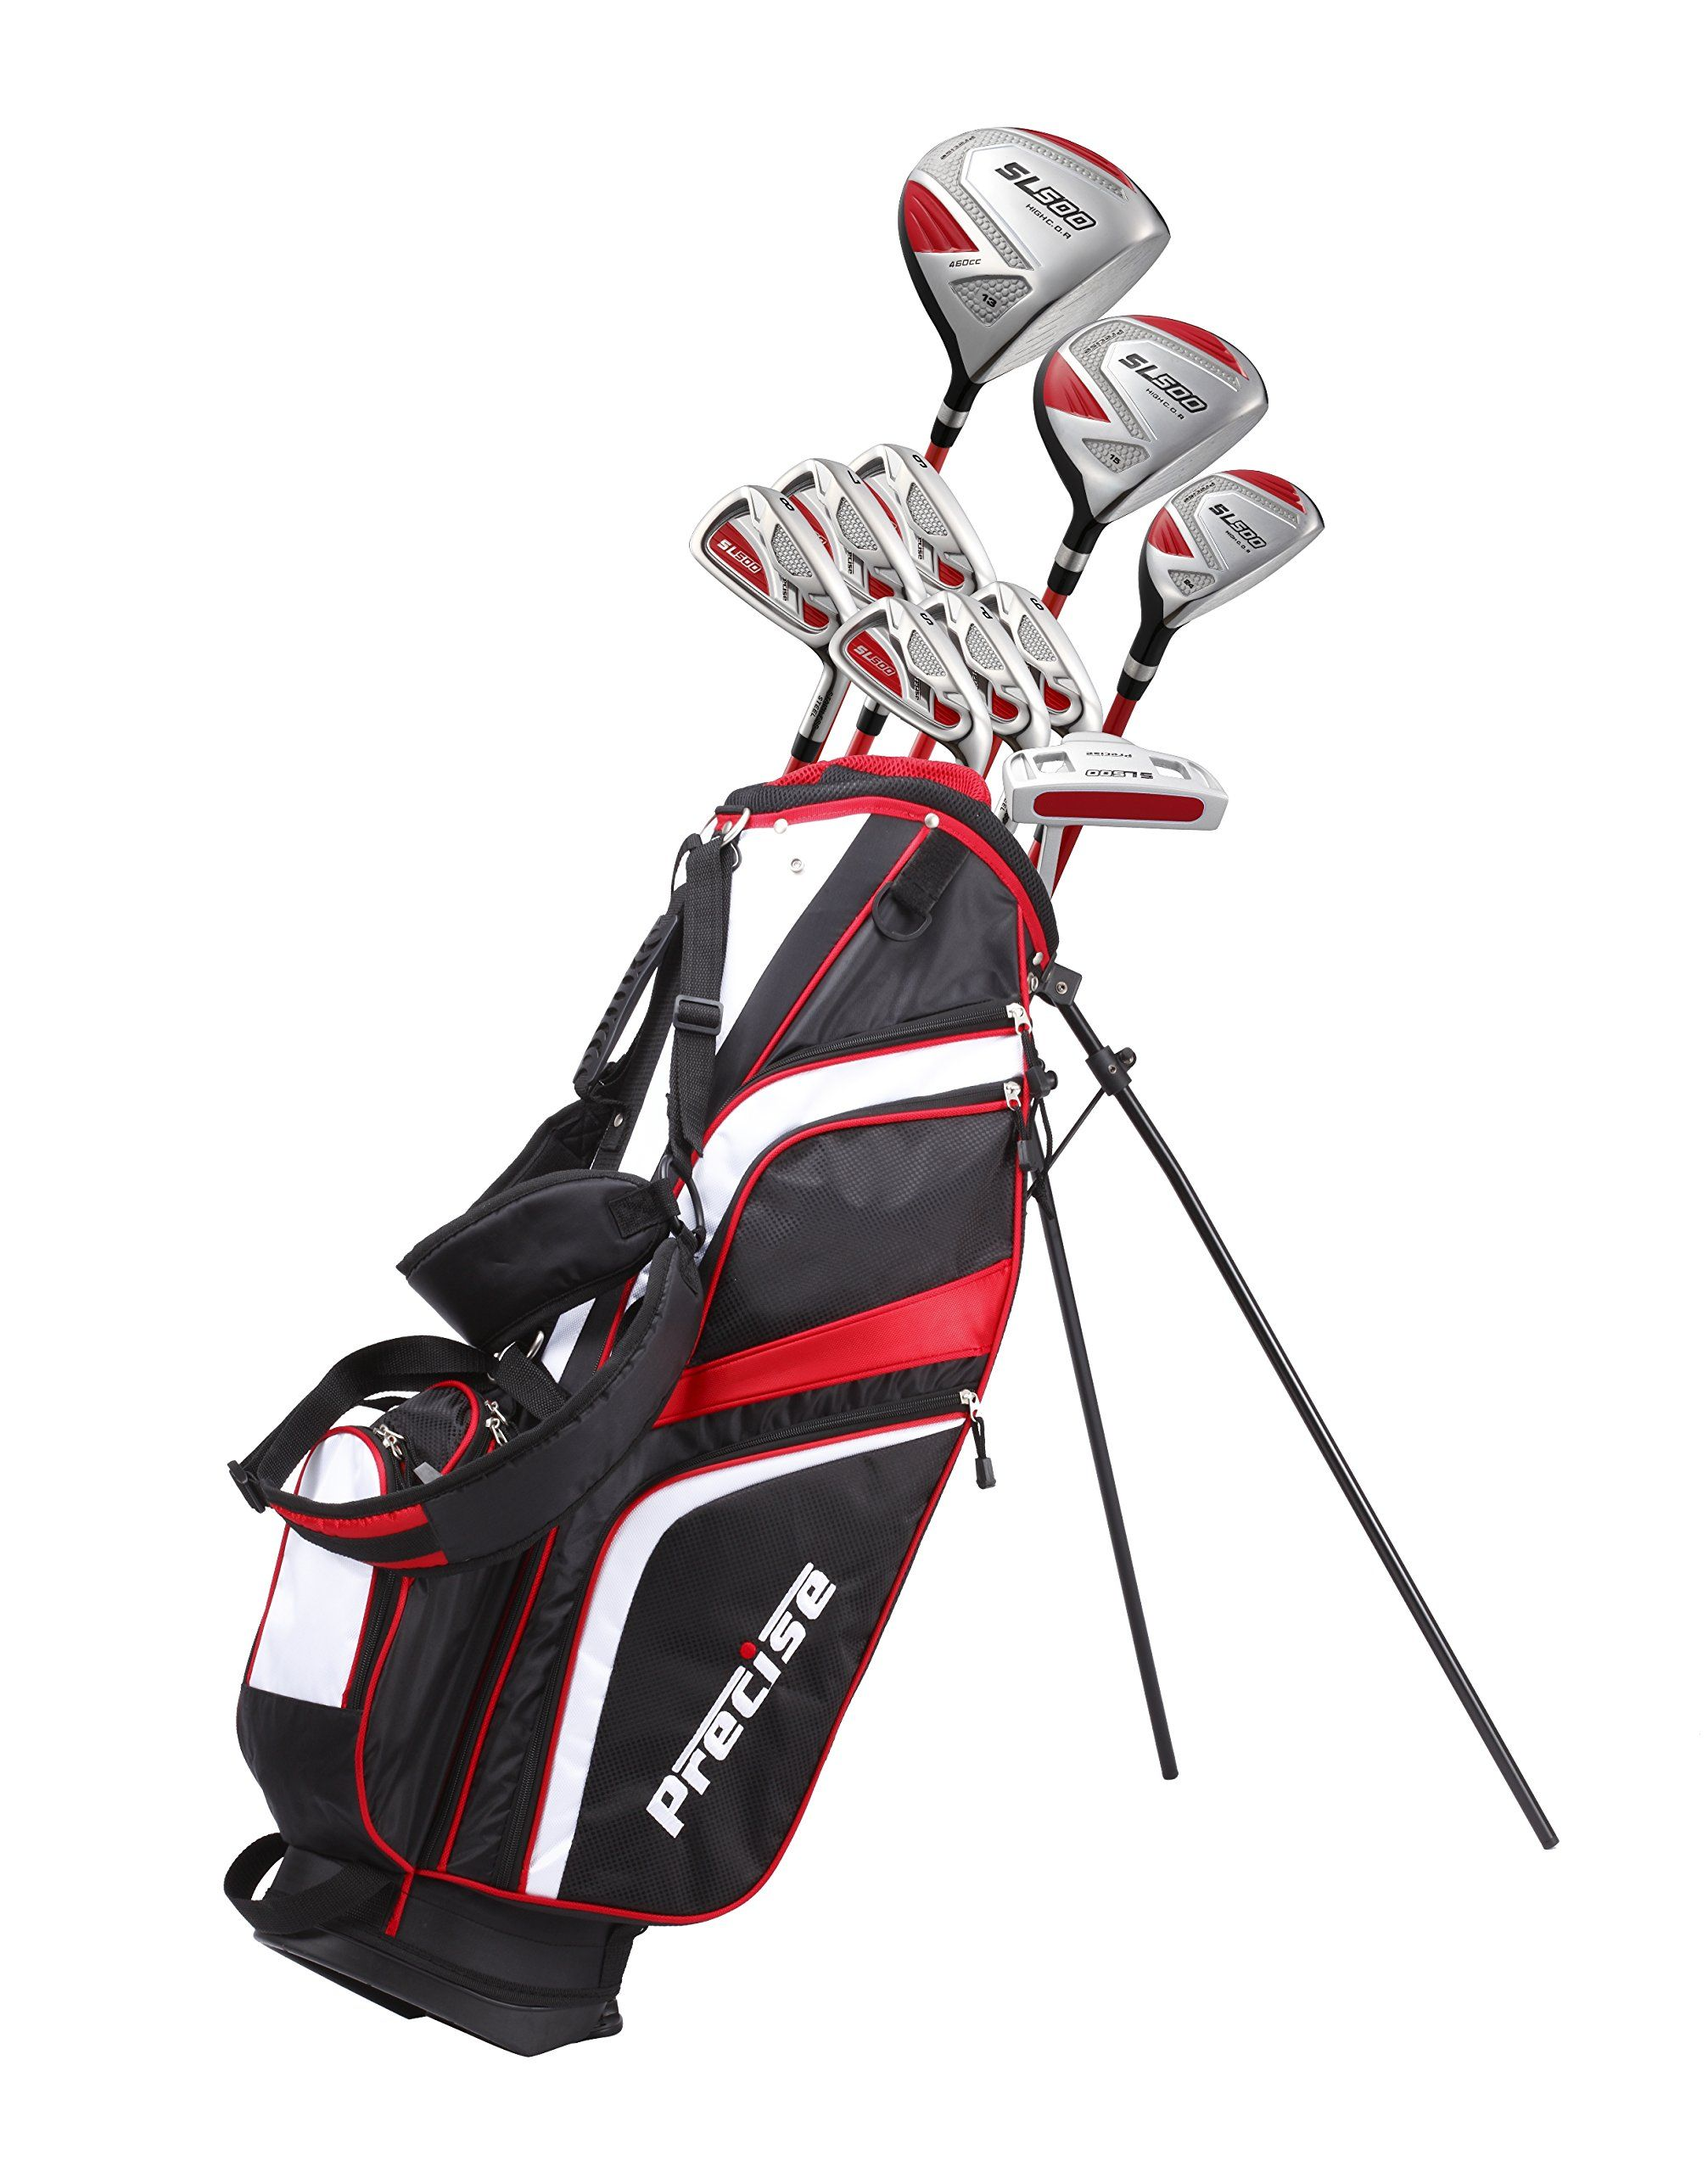 Golf Clubs - 15 Piece Ladies Womens Complete Right Handed Golf Clubs Set  Includes Titanium Driver S.S. Fairway S.S. Hybrid S.S. 6PW Irons Sand Wedge  Putter ... 640729d314